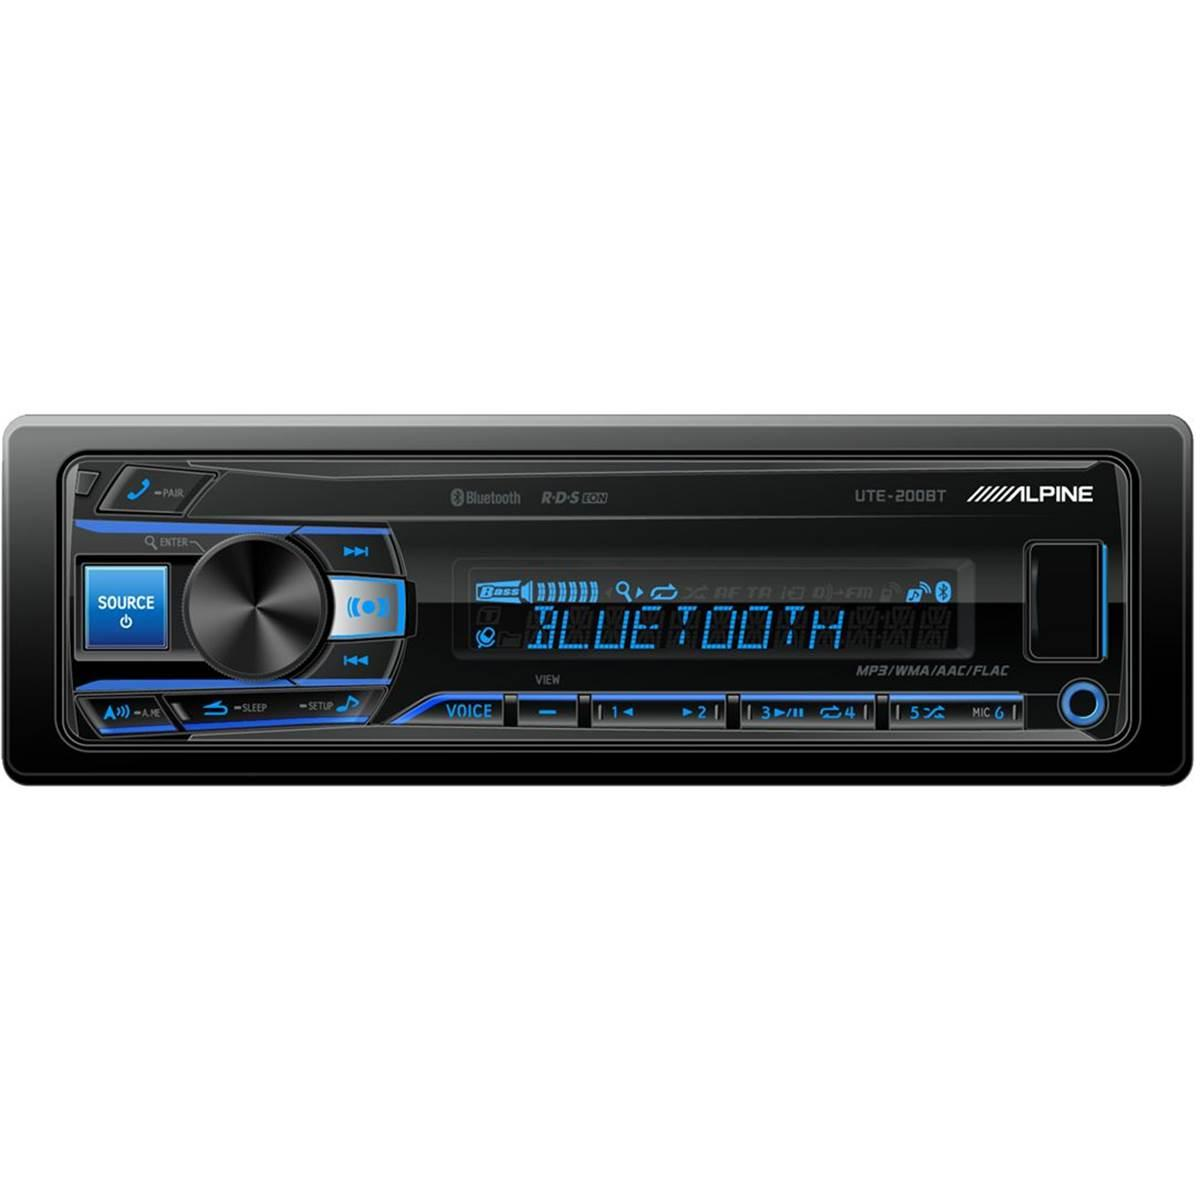 autoradio cd et mp3 alpine ute 200bt usb aux. Black Bedroom Furniture Sets. Home Design Ideas